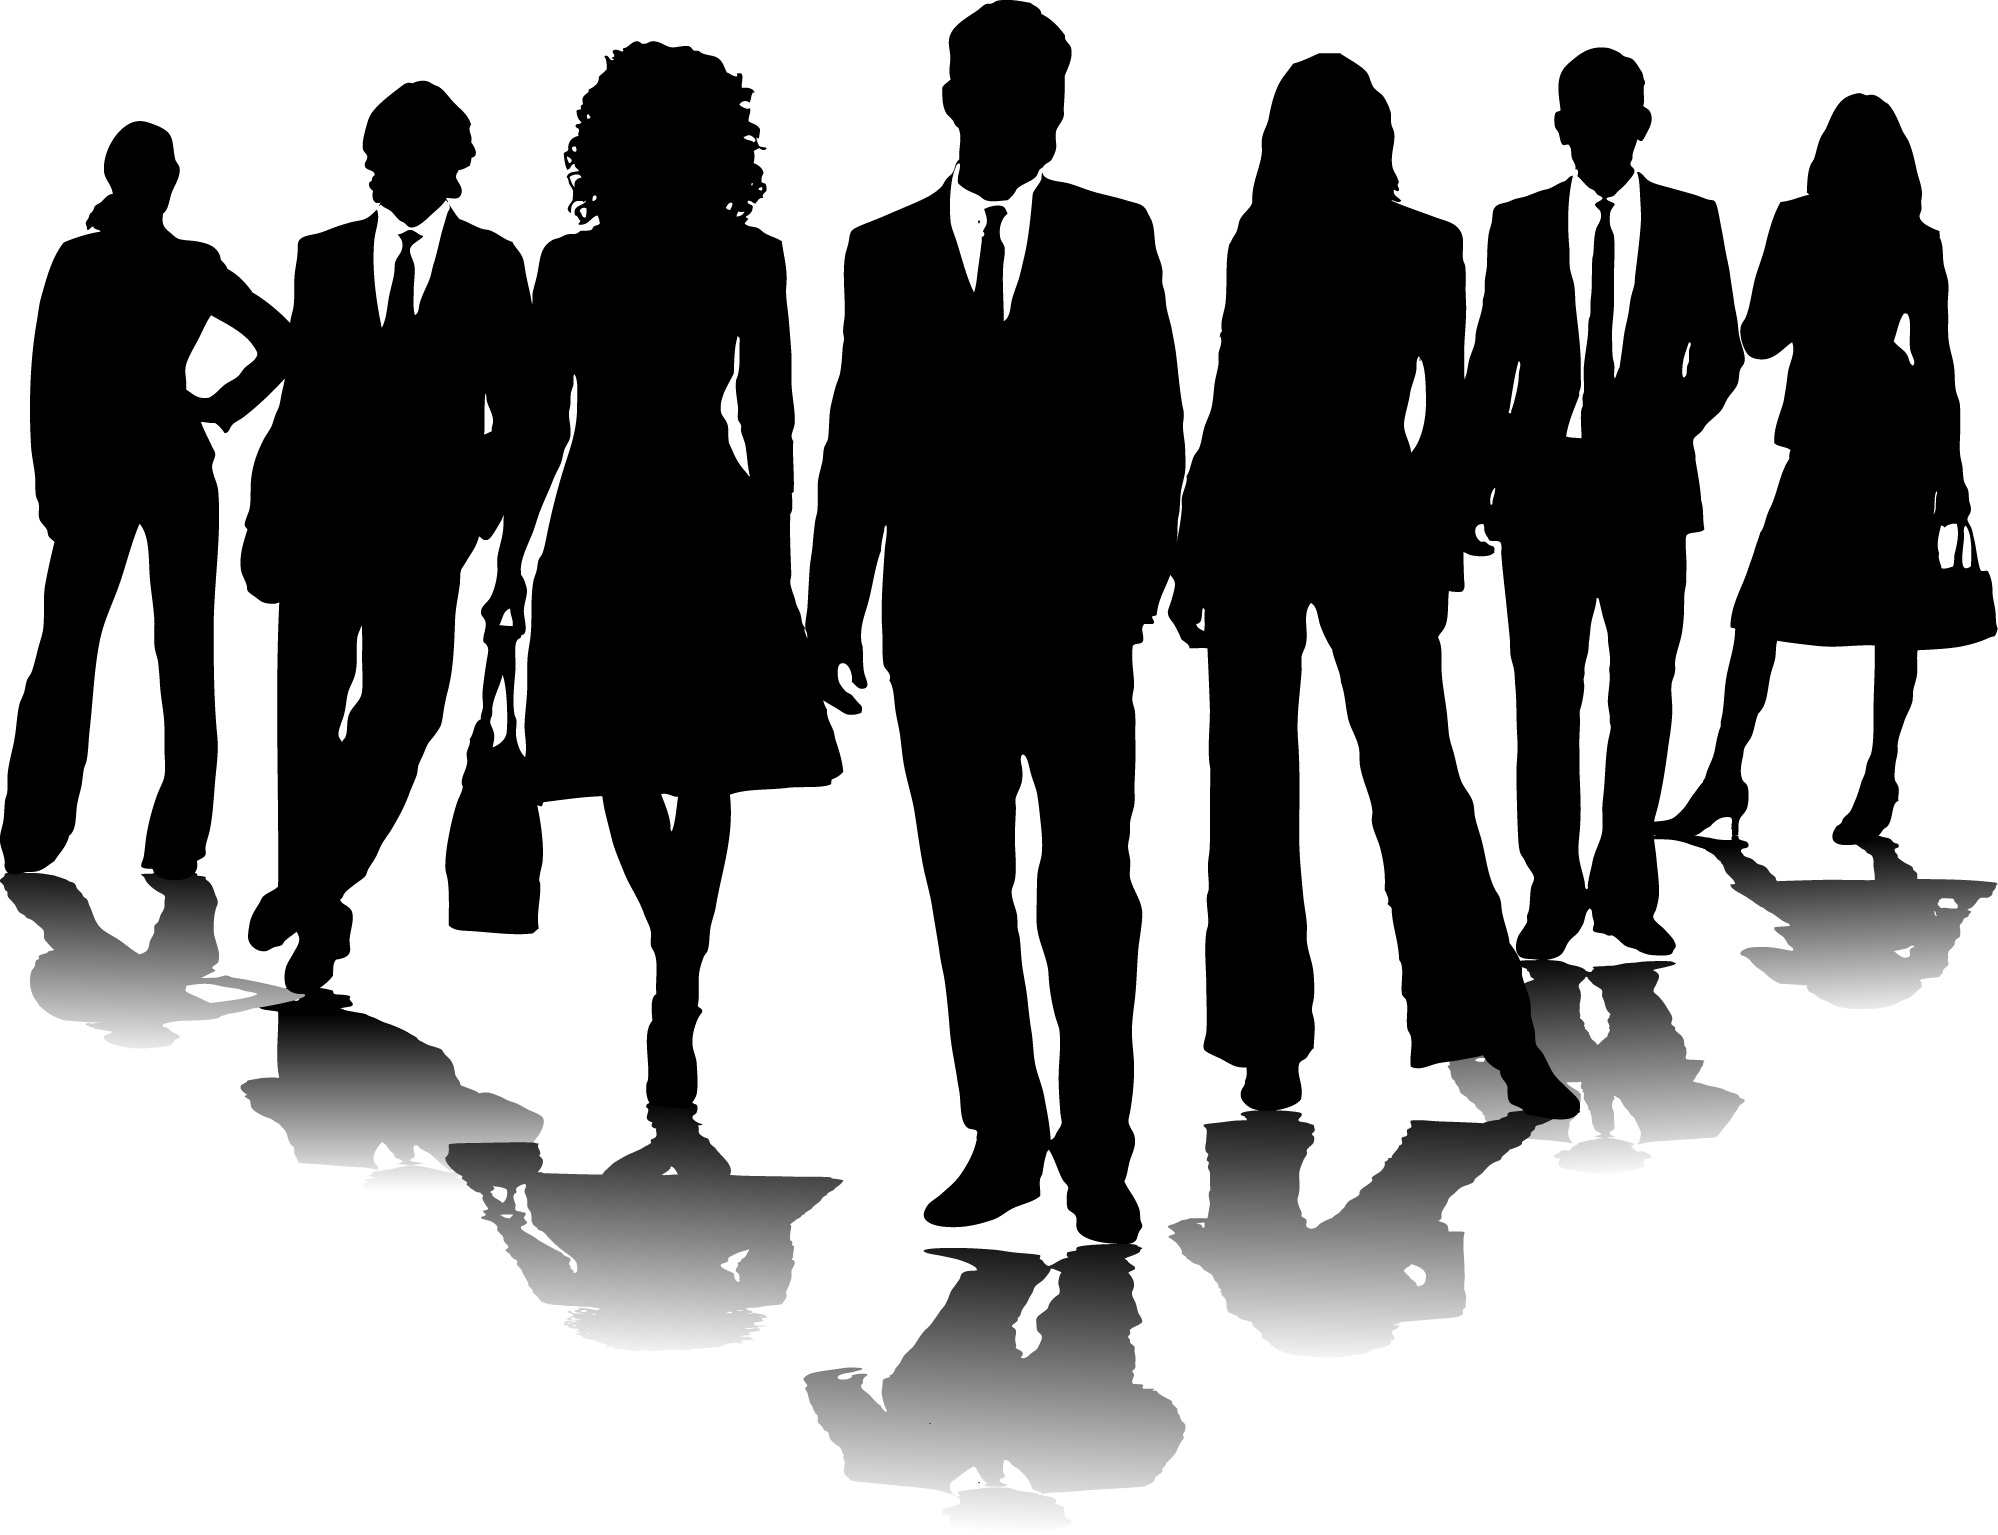 hight resolution of business people panda free images clipart